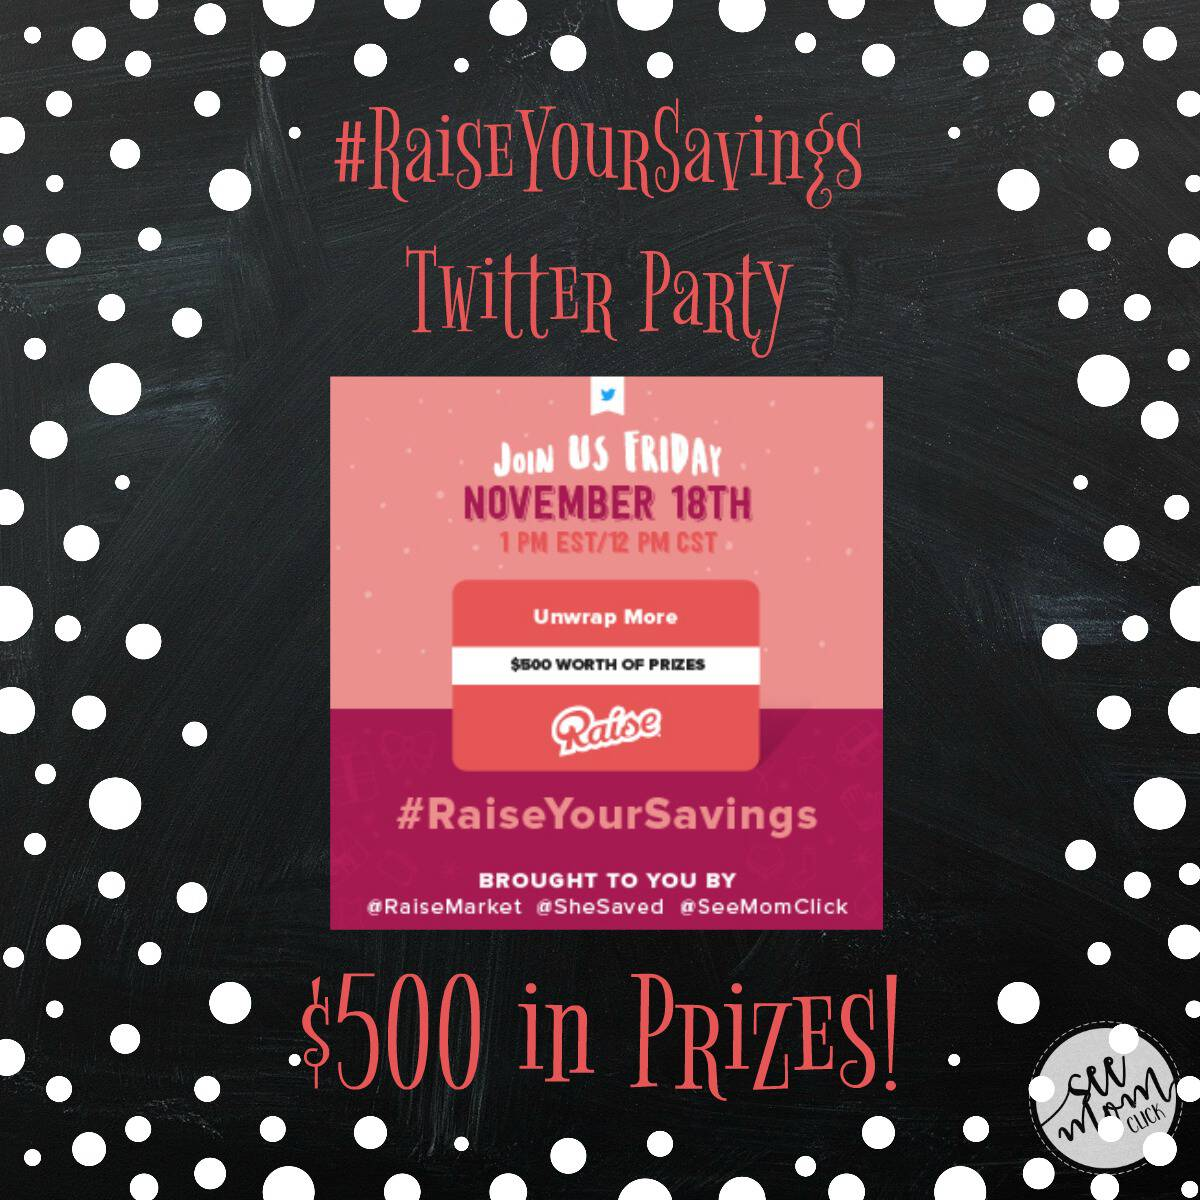 RSVP here for the #RaiseYourSavings Twitter Party at 1pm ET on November 18. We're going to be talking about buying & selling gift cards + $500 in prizes!